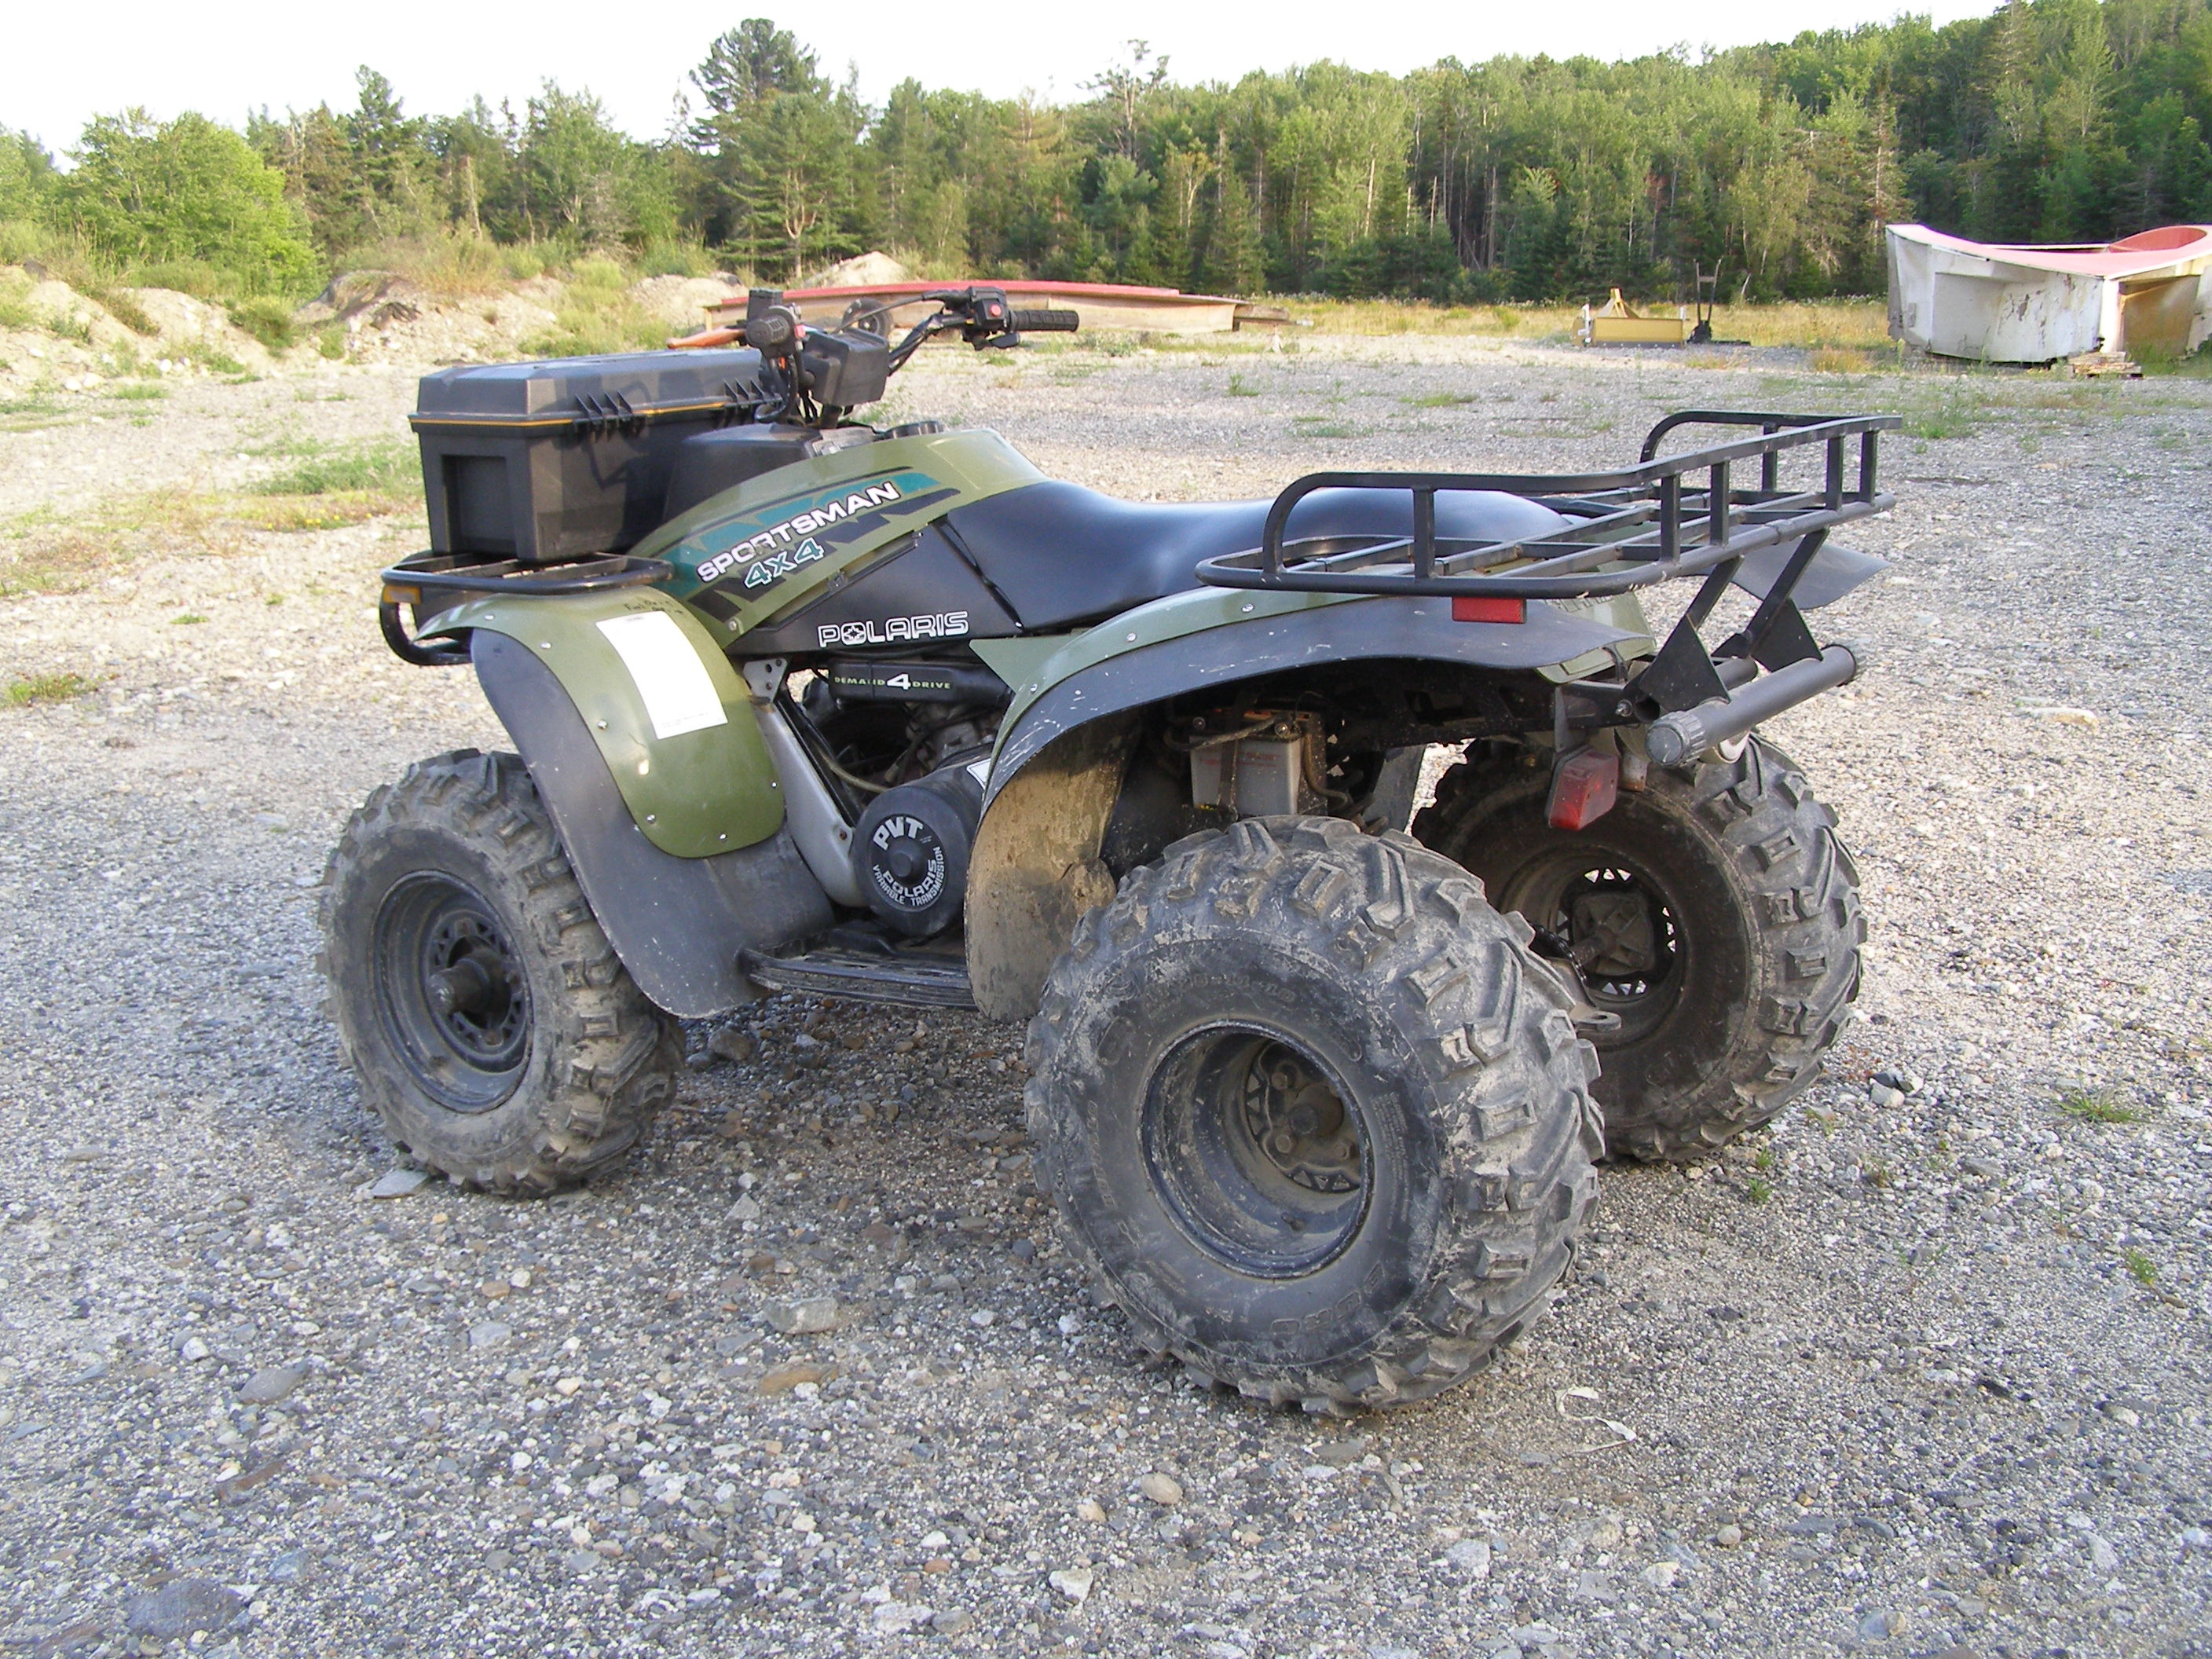 Atvs for sale cz chains page 7 97 polaris sportsman 400 p1010550g publicscrutiny Image collections